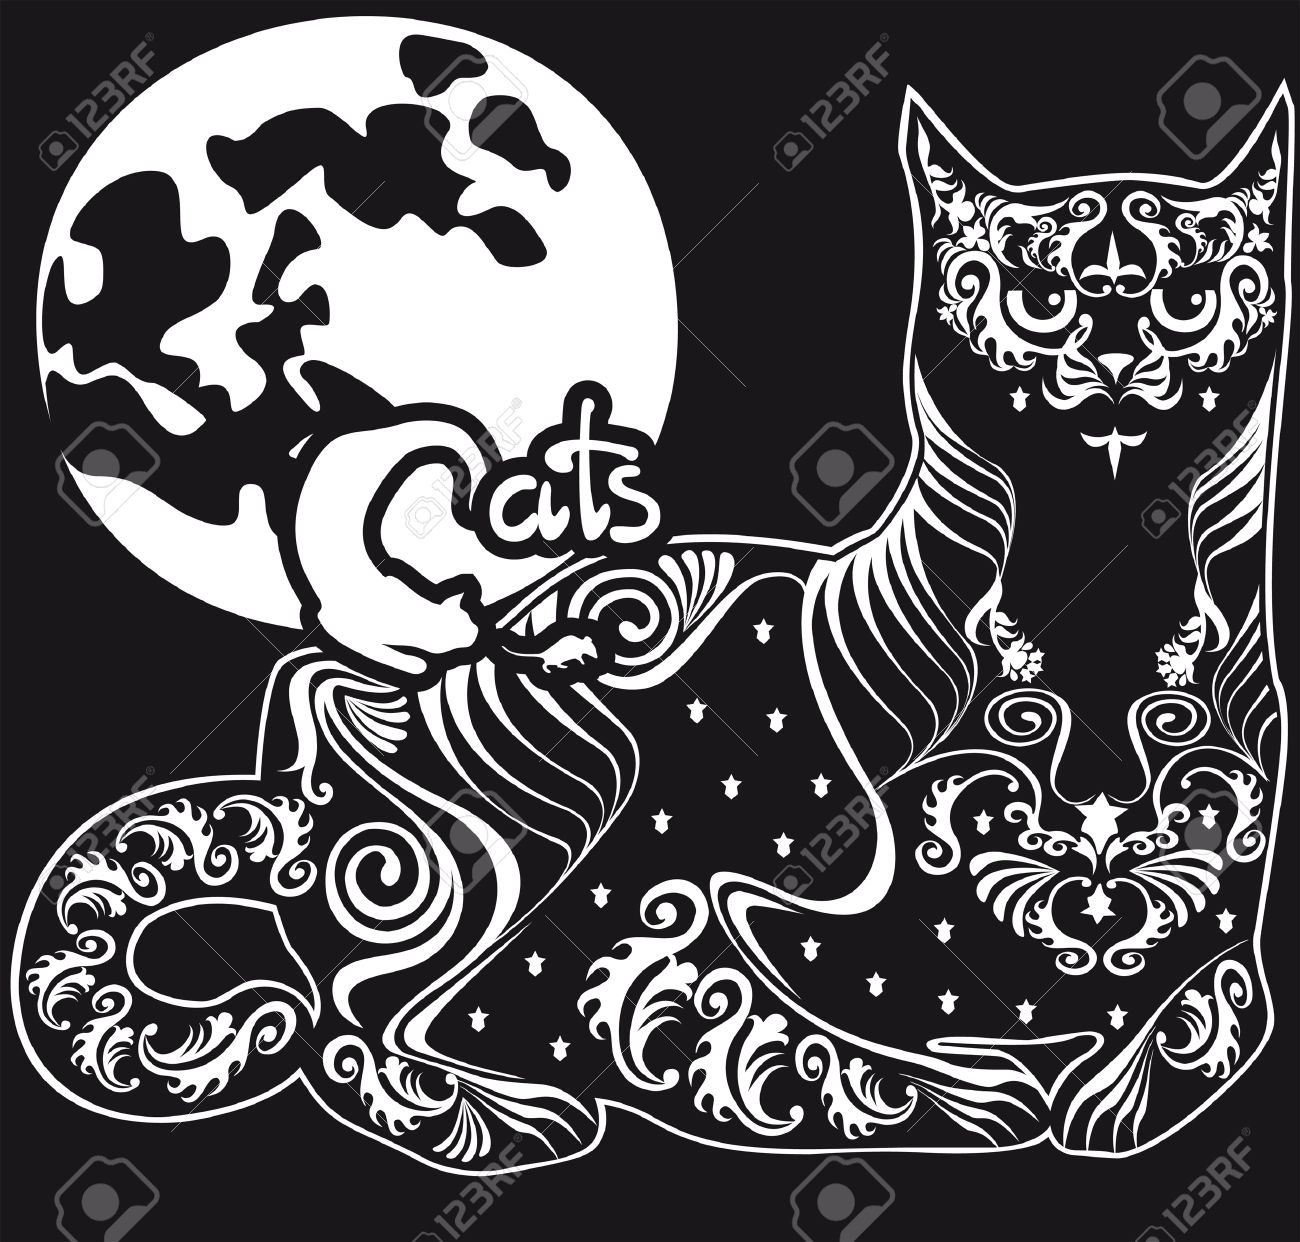 Lying Black Cat Against The Moon, The Inscription And Symbols.